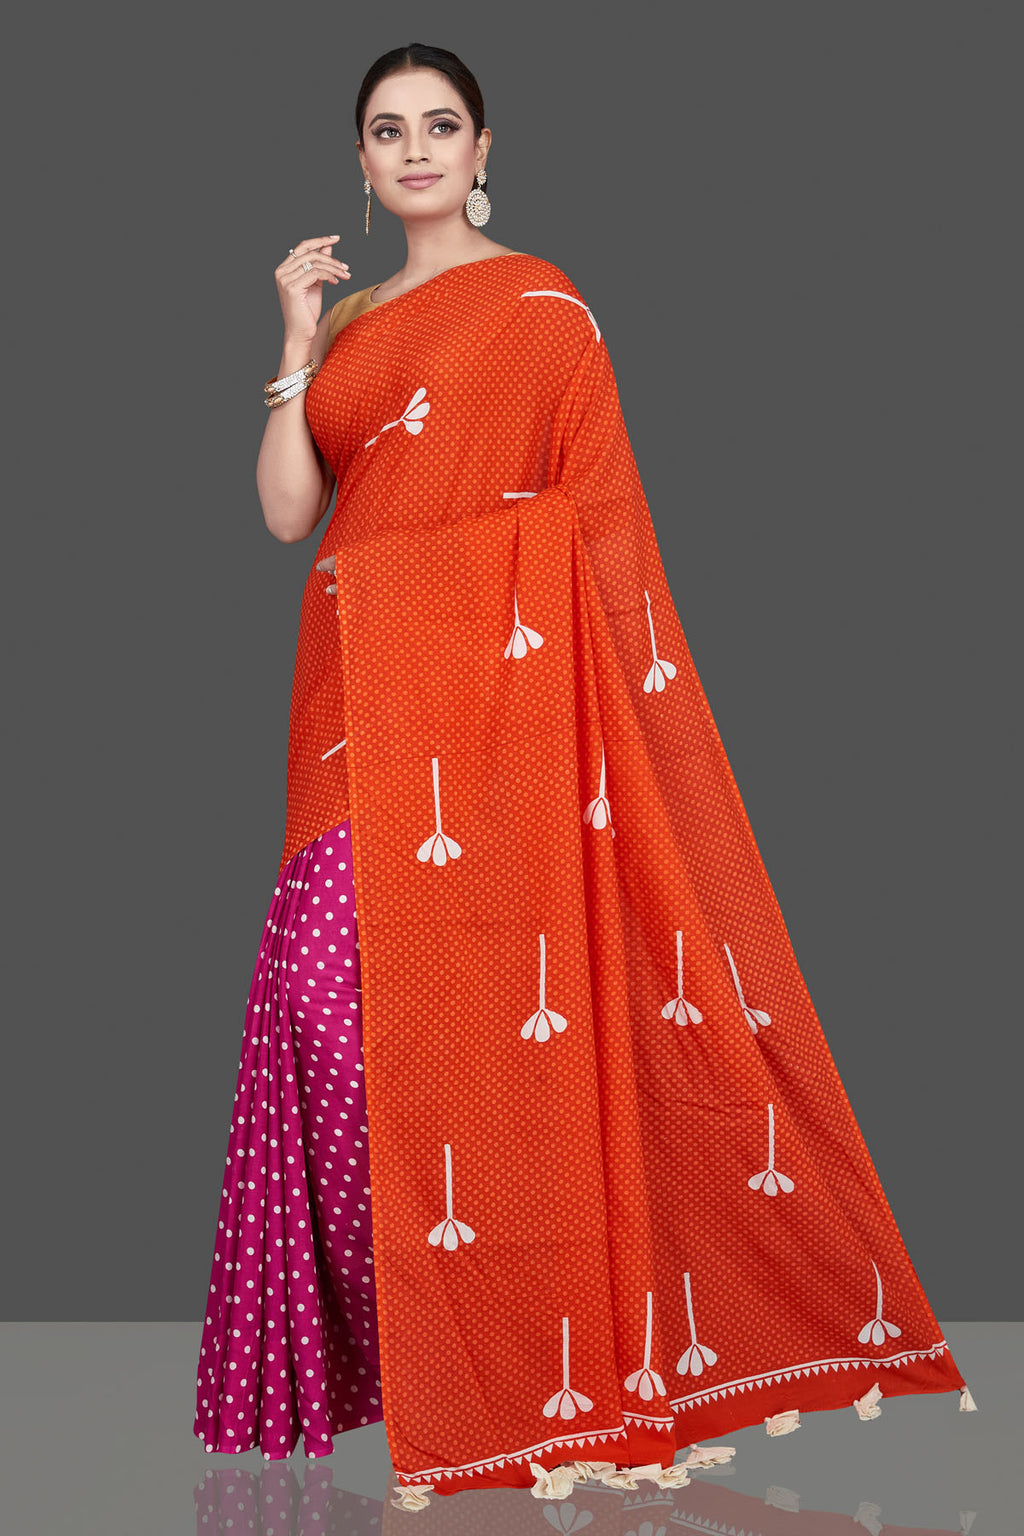 Shop stunning red and pink printed modal silk saree online in USA. Be the highlight of the occasion in beautiful pure silk saree, designer saris, handloom sarees, embroidered sarees, Kanchipuram sarees, Banarasi saris from Pure Elegance Indian saree store in USA.-full view